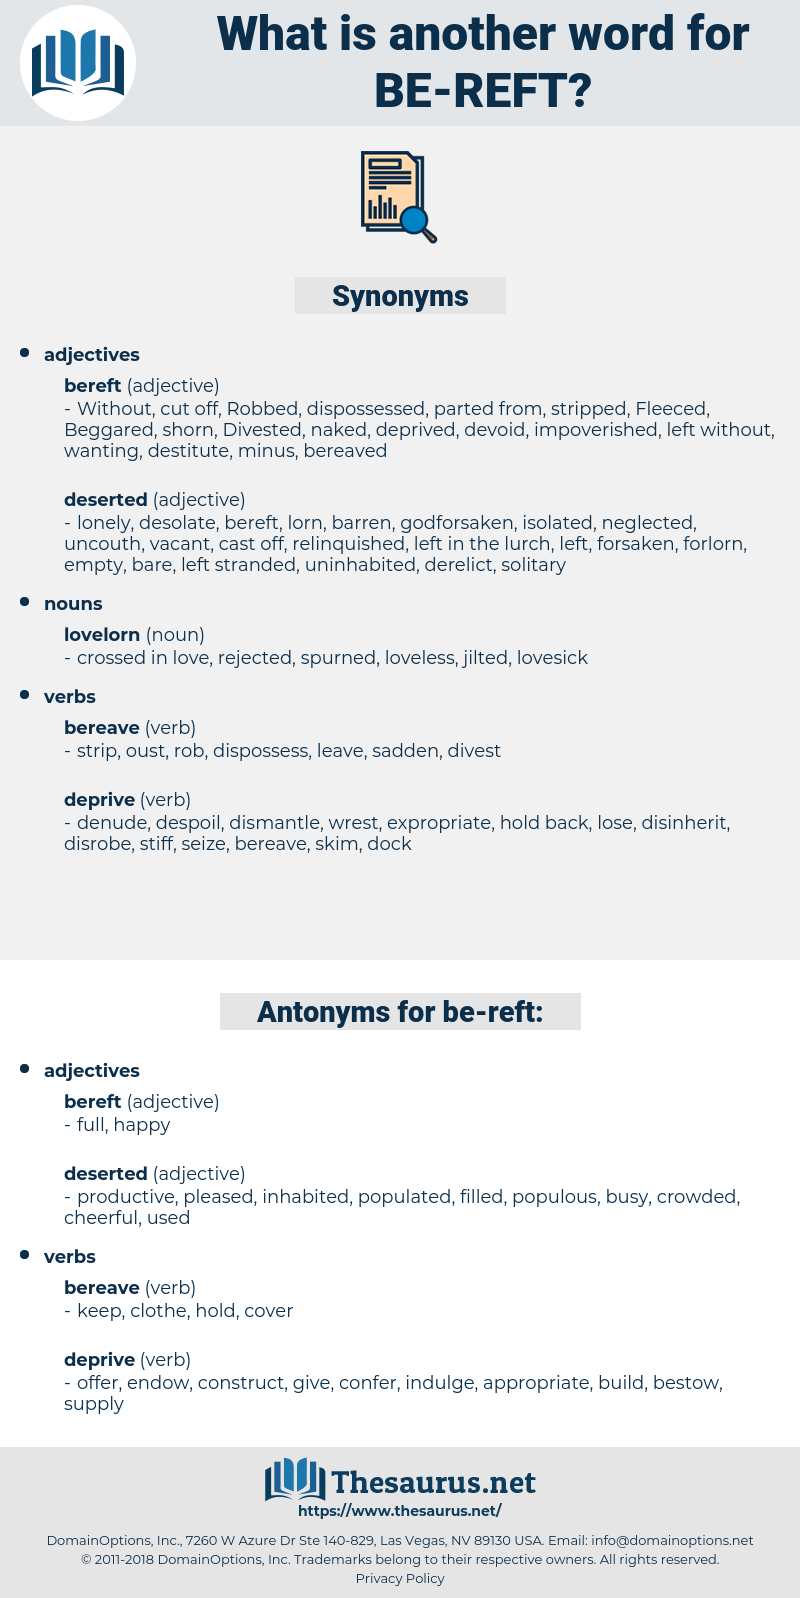 be-reft, synonym be-reft, another word for be-reft, words like be-reft, thesaurus be-reft